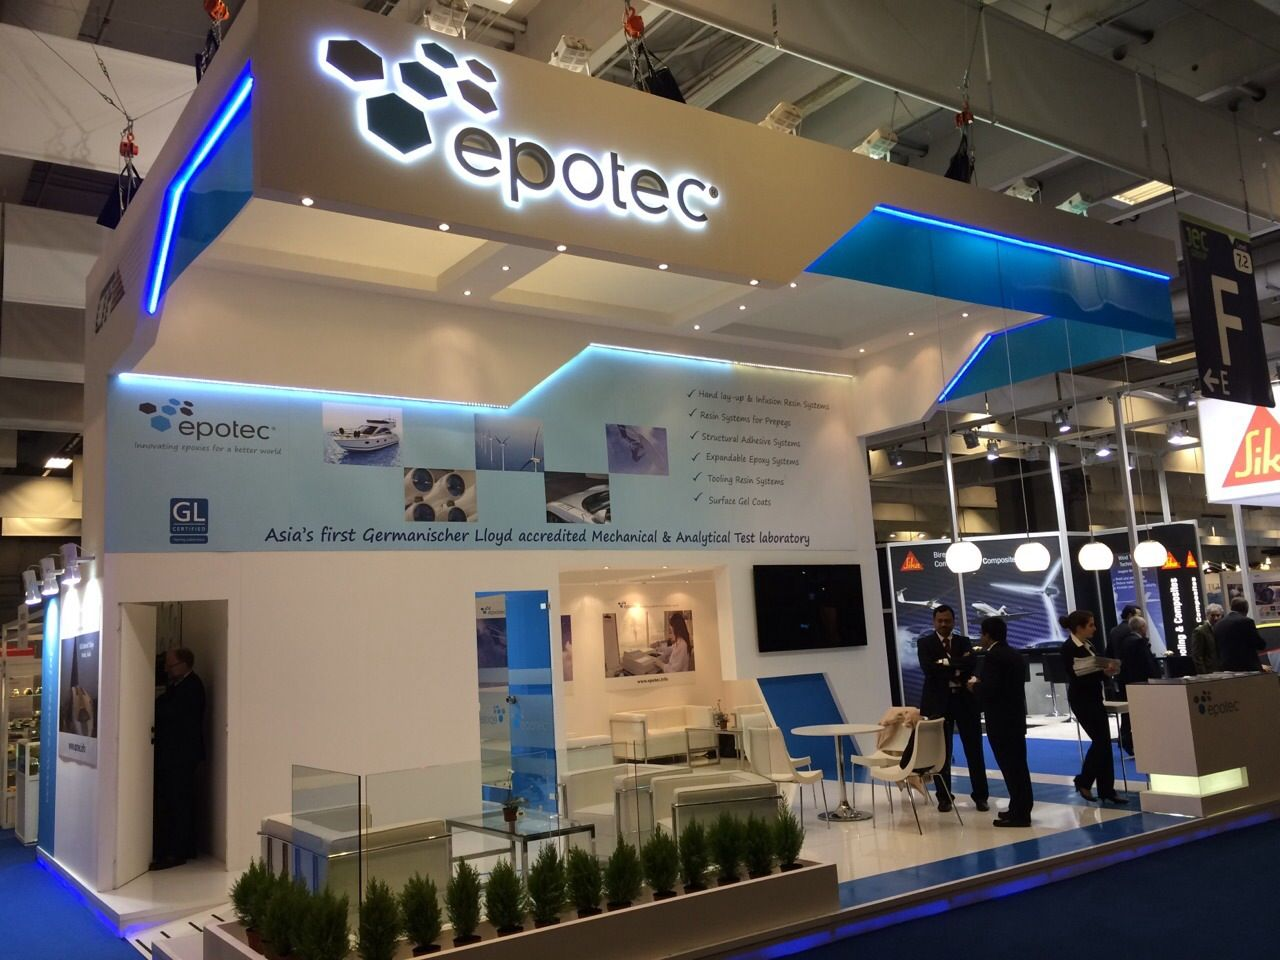 Exhibition Stand Europe : Custom exhibition stand for epotec jec europe paris to